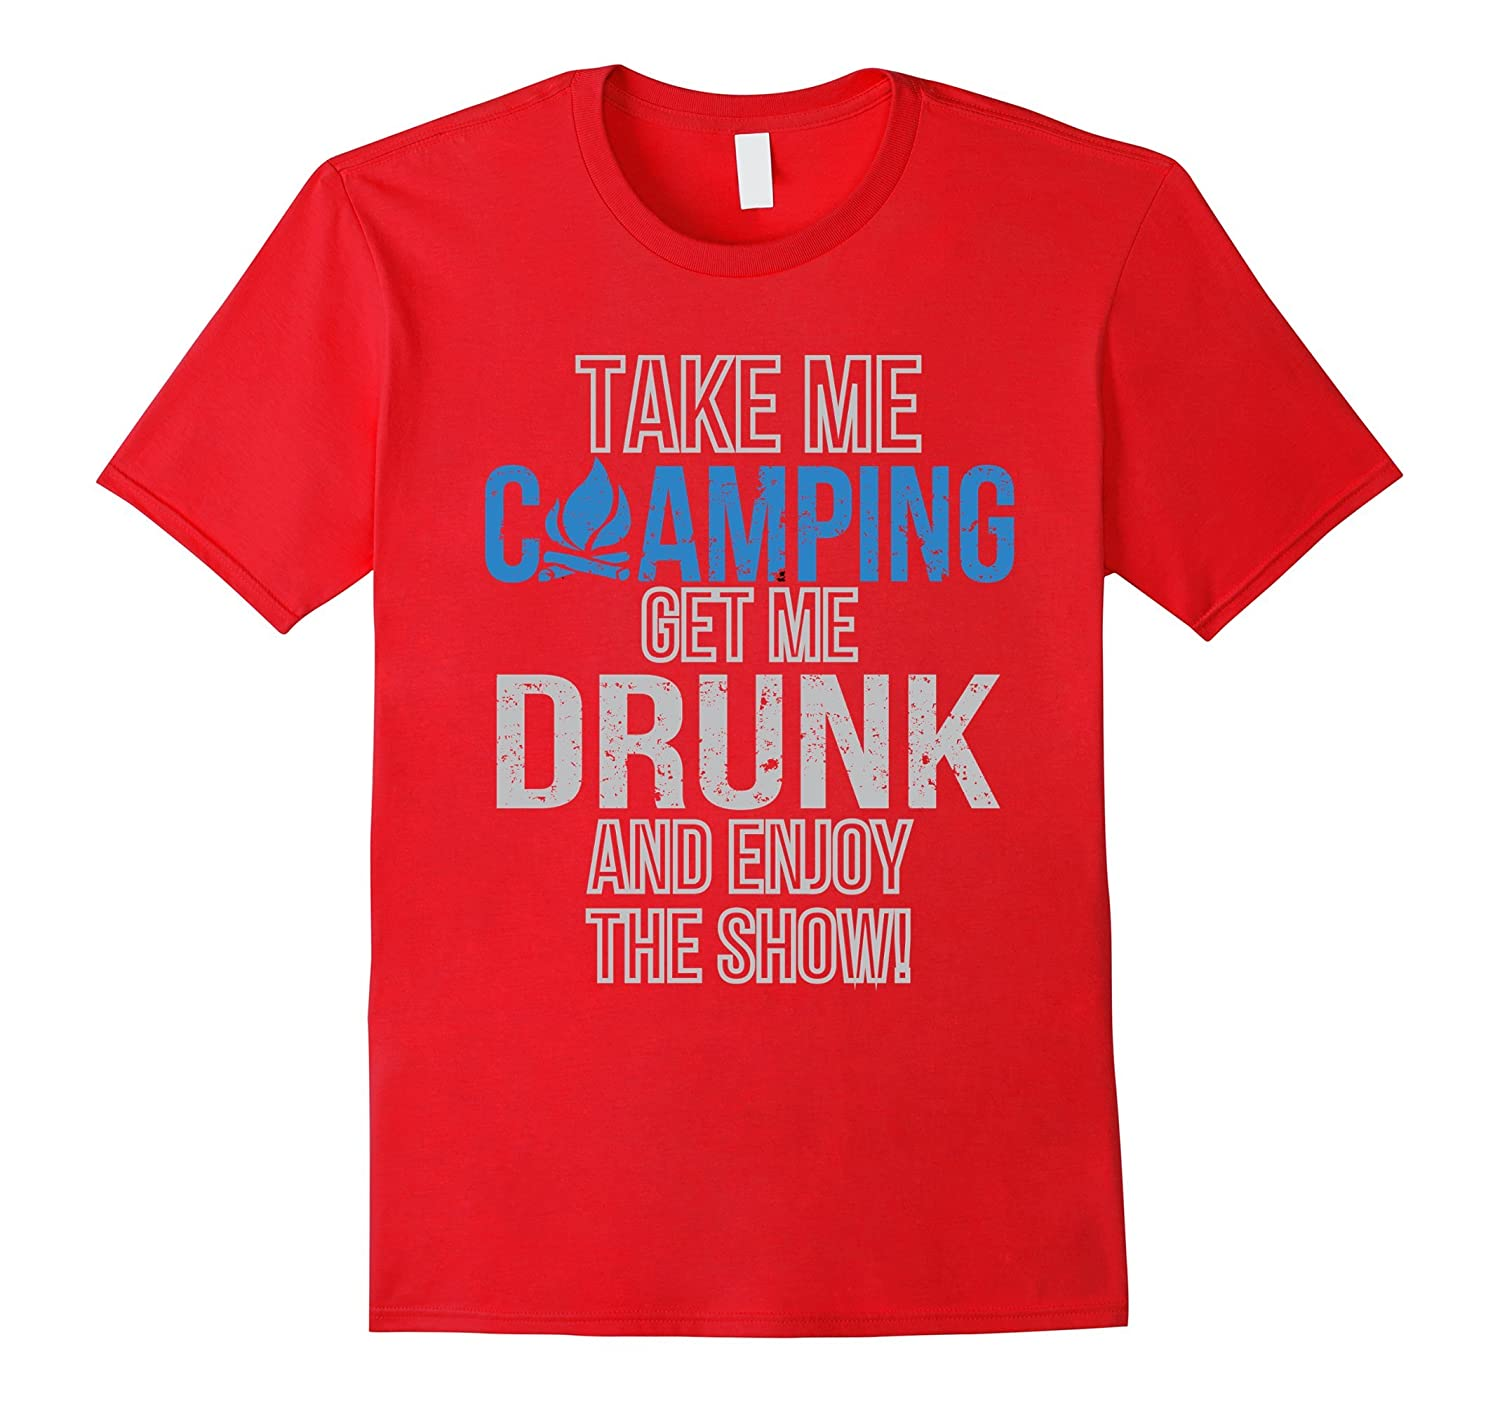 Take me camping get me drunk consider, that you